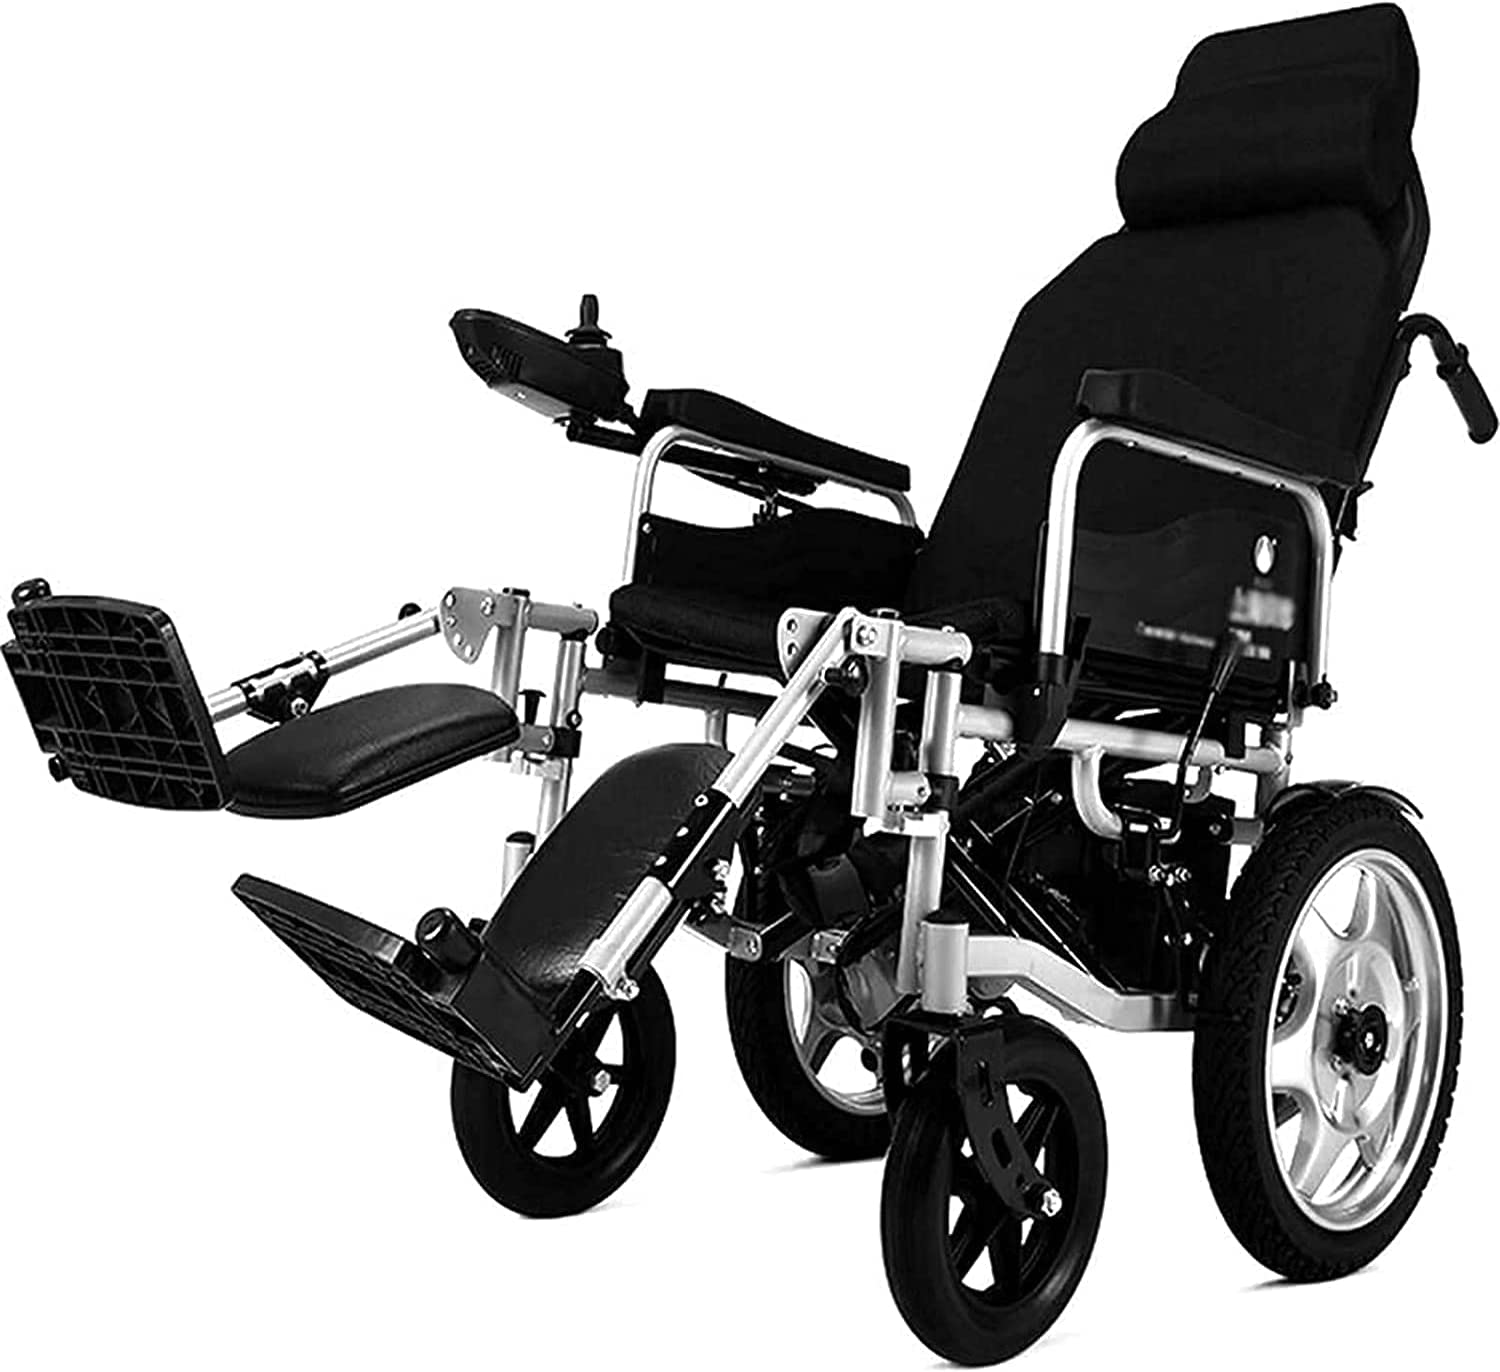 Electric Wheelchair Max 78% OFF Long Battery Lithium Life F Max 52% OFF Portable